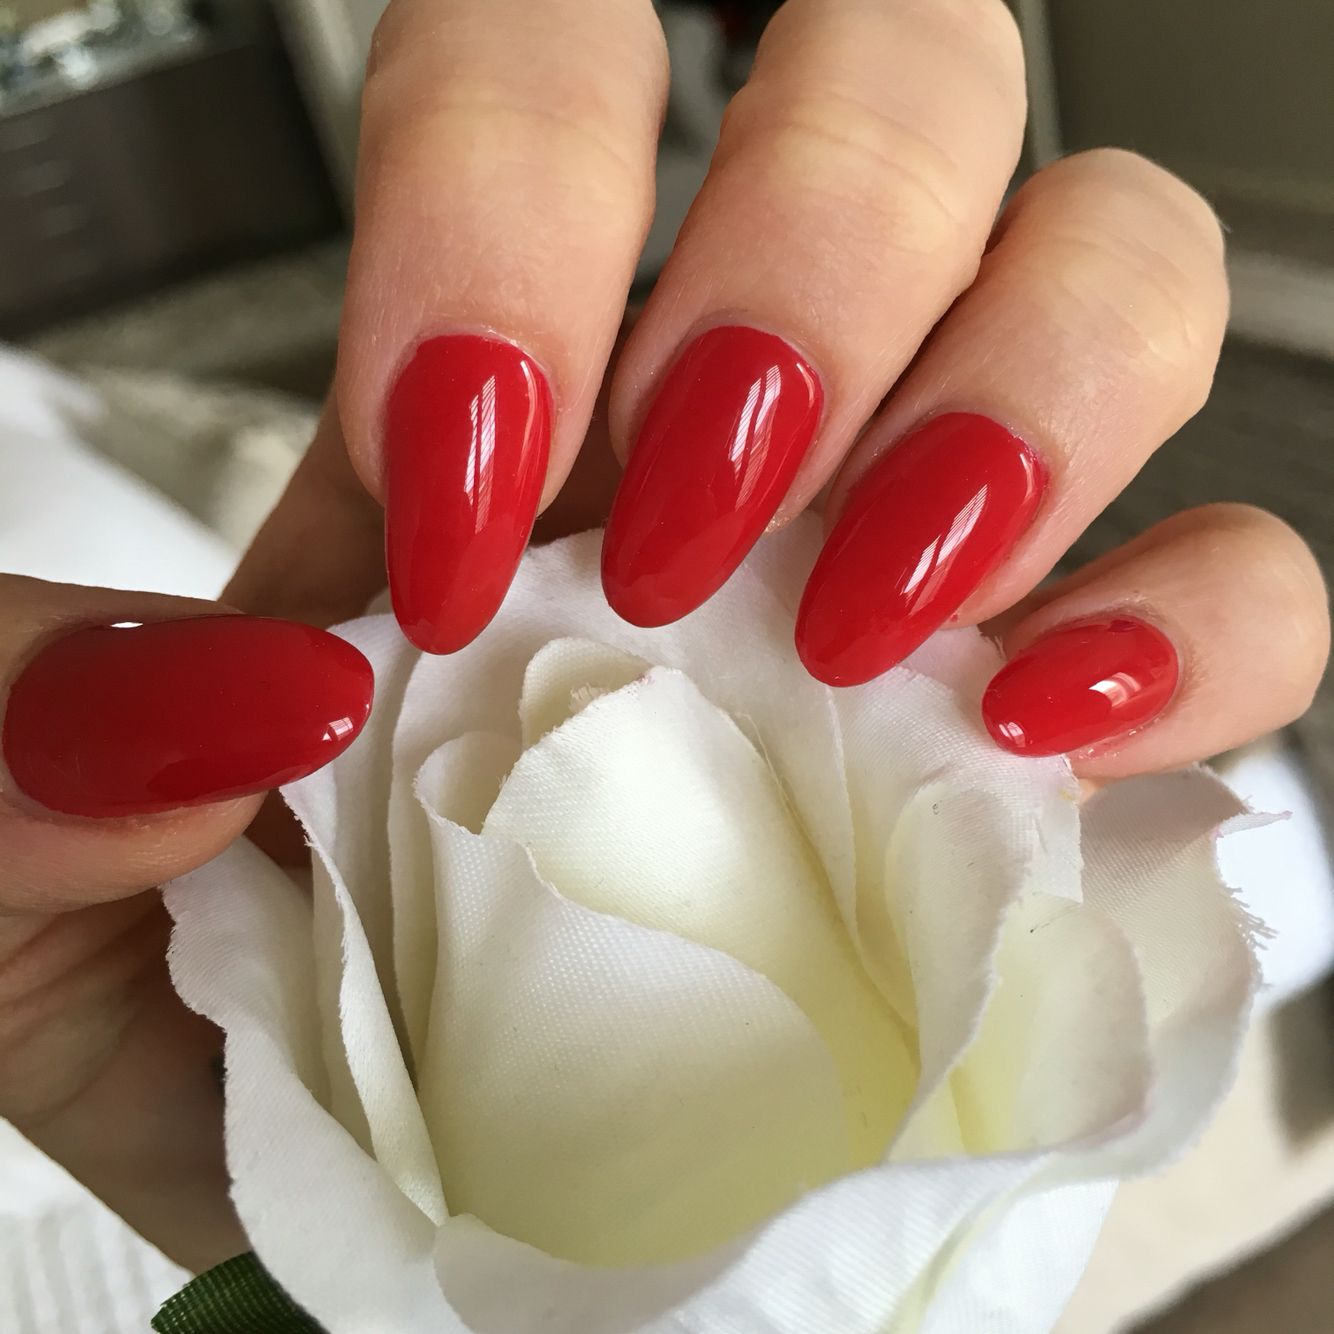 Red acrylic, gel / shellac, chic, almond shape nails ...